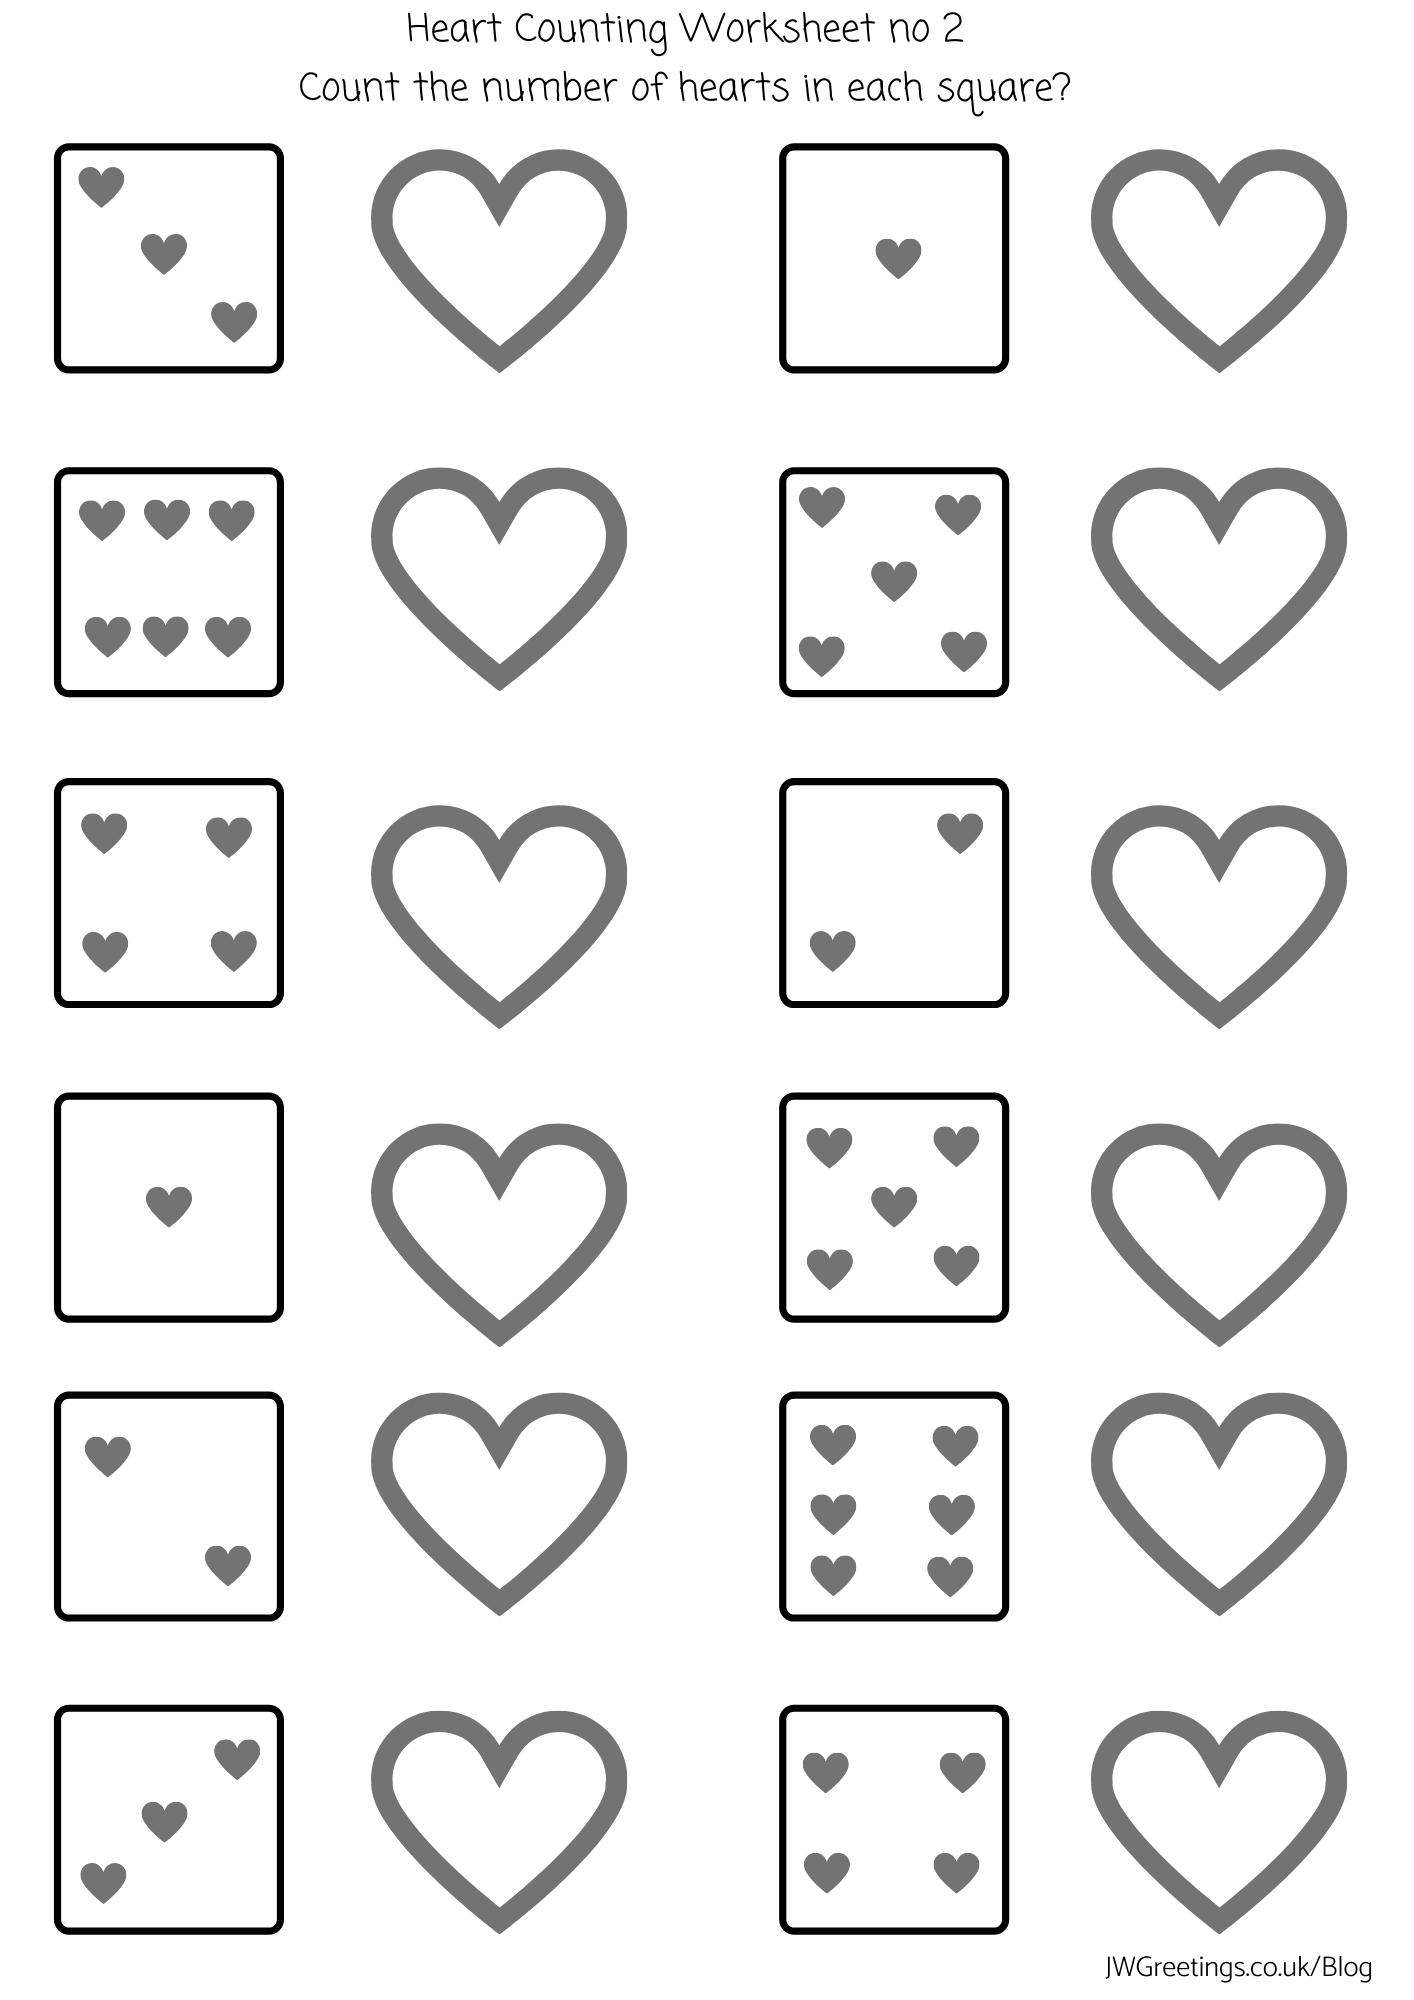 Hearts Counting Worksheet Preschool No 2